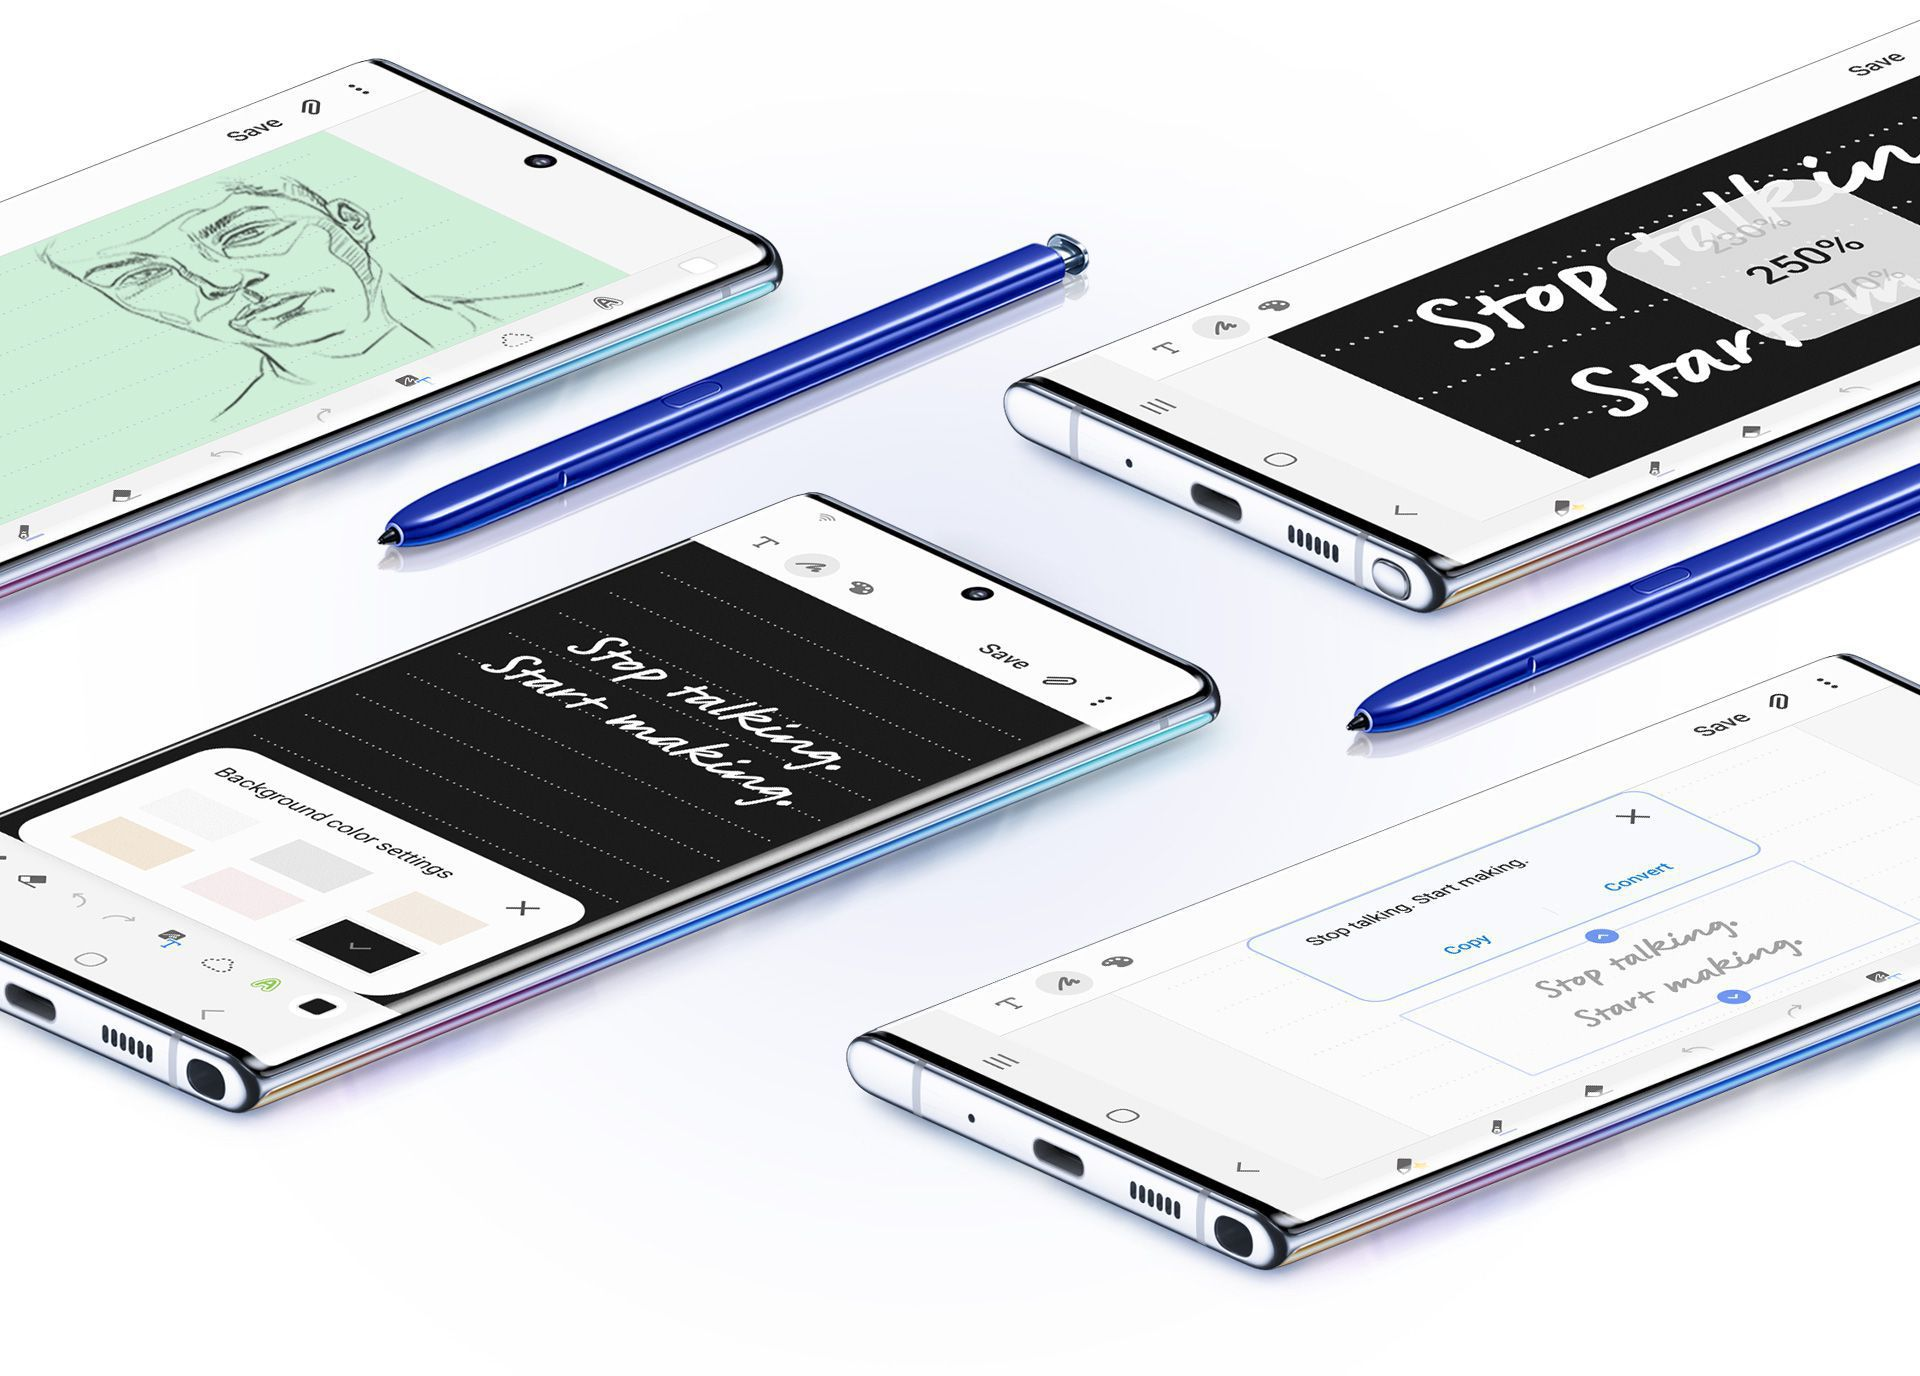 The Samsung Galaxy Note10+ connects easily to both PCs and Macs for increased productivity.